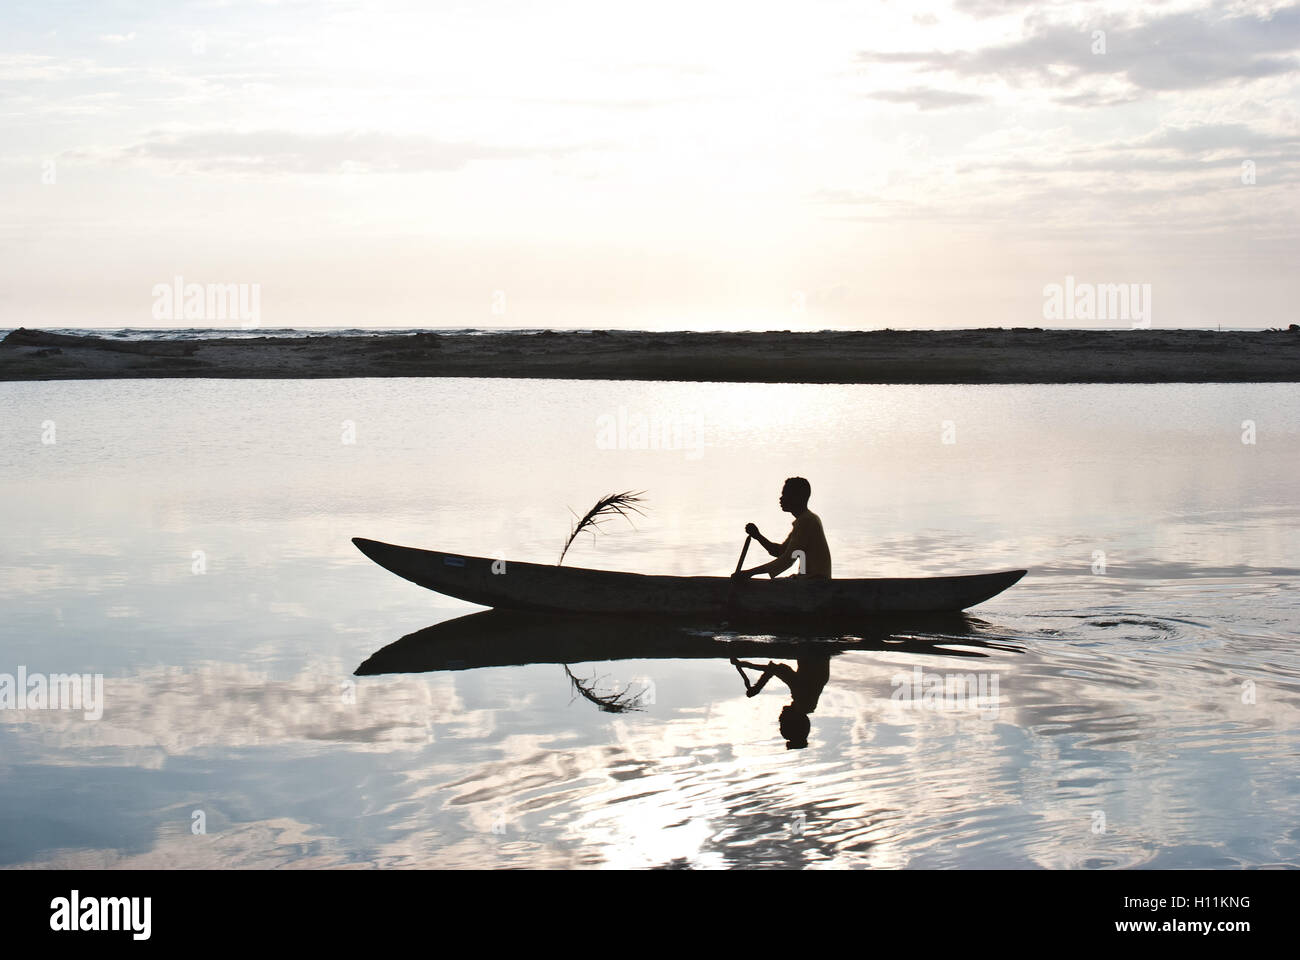 Man boating in the Pangalanes canal. In the background, the Indian ocean is visible ( Madagascar). - Stock Image